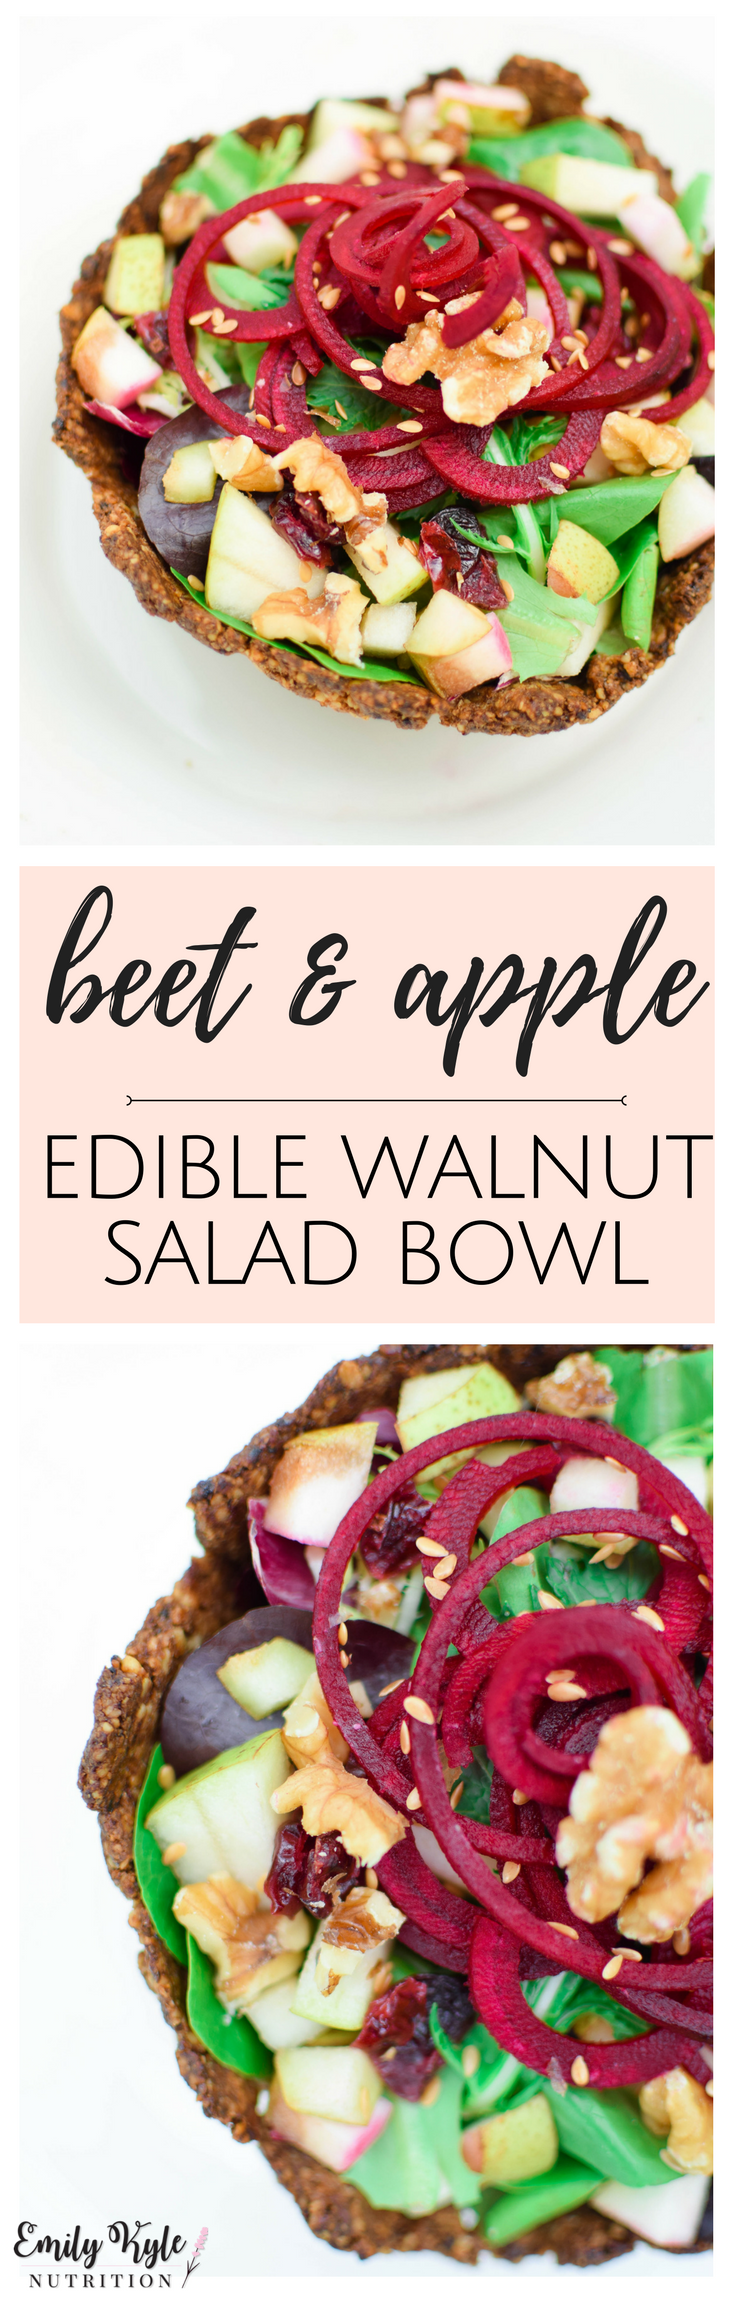 Enjoy a refreshing spiralized beet & apple salad inside a baked edible walnut salad bowl!